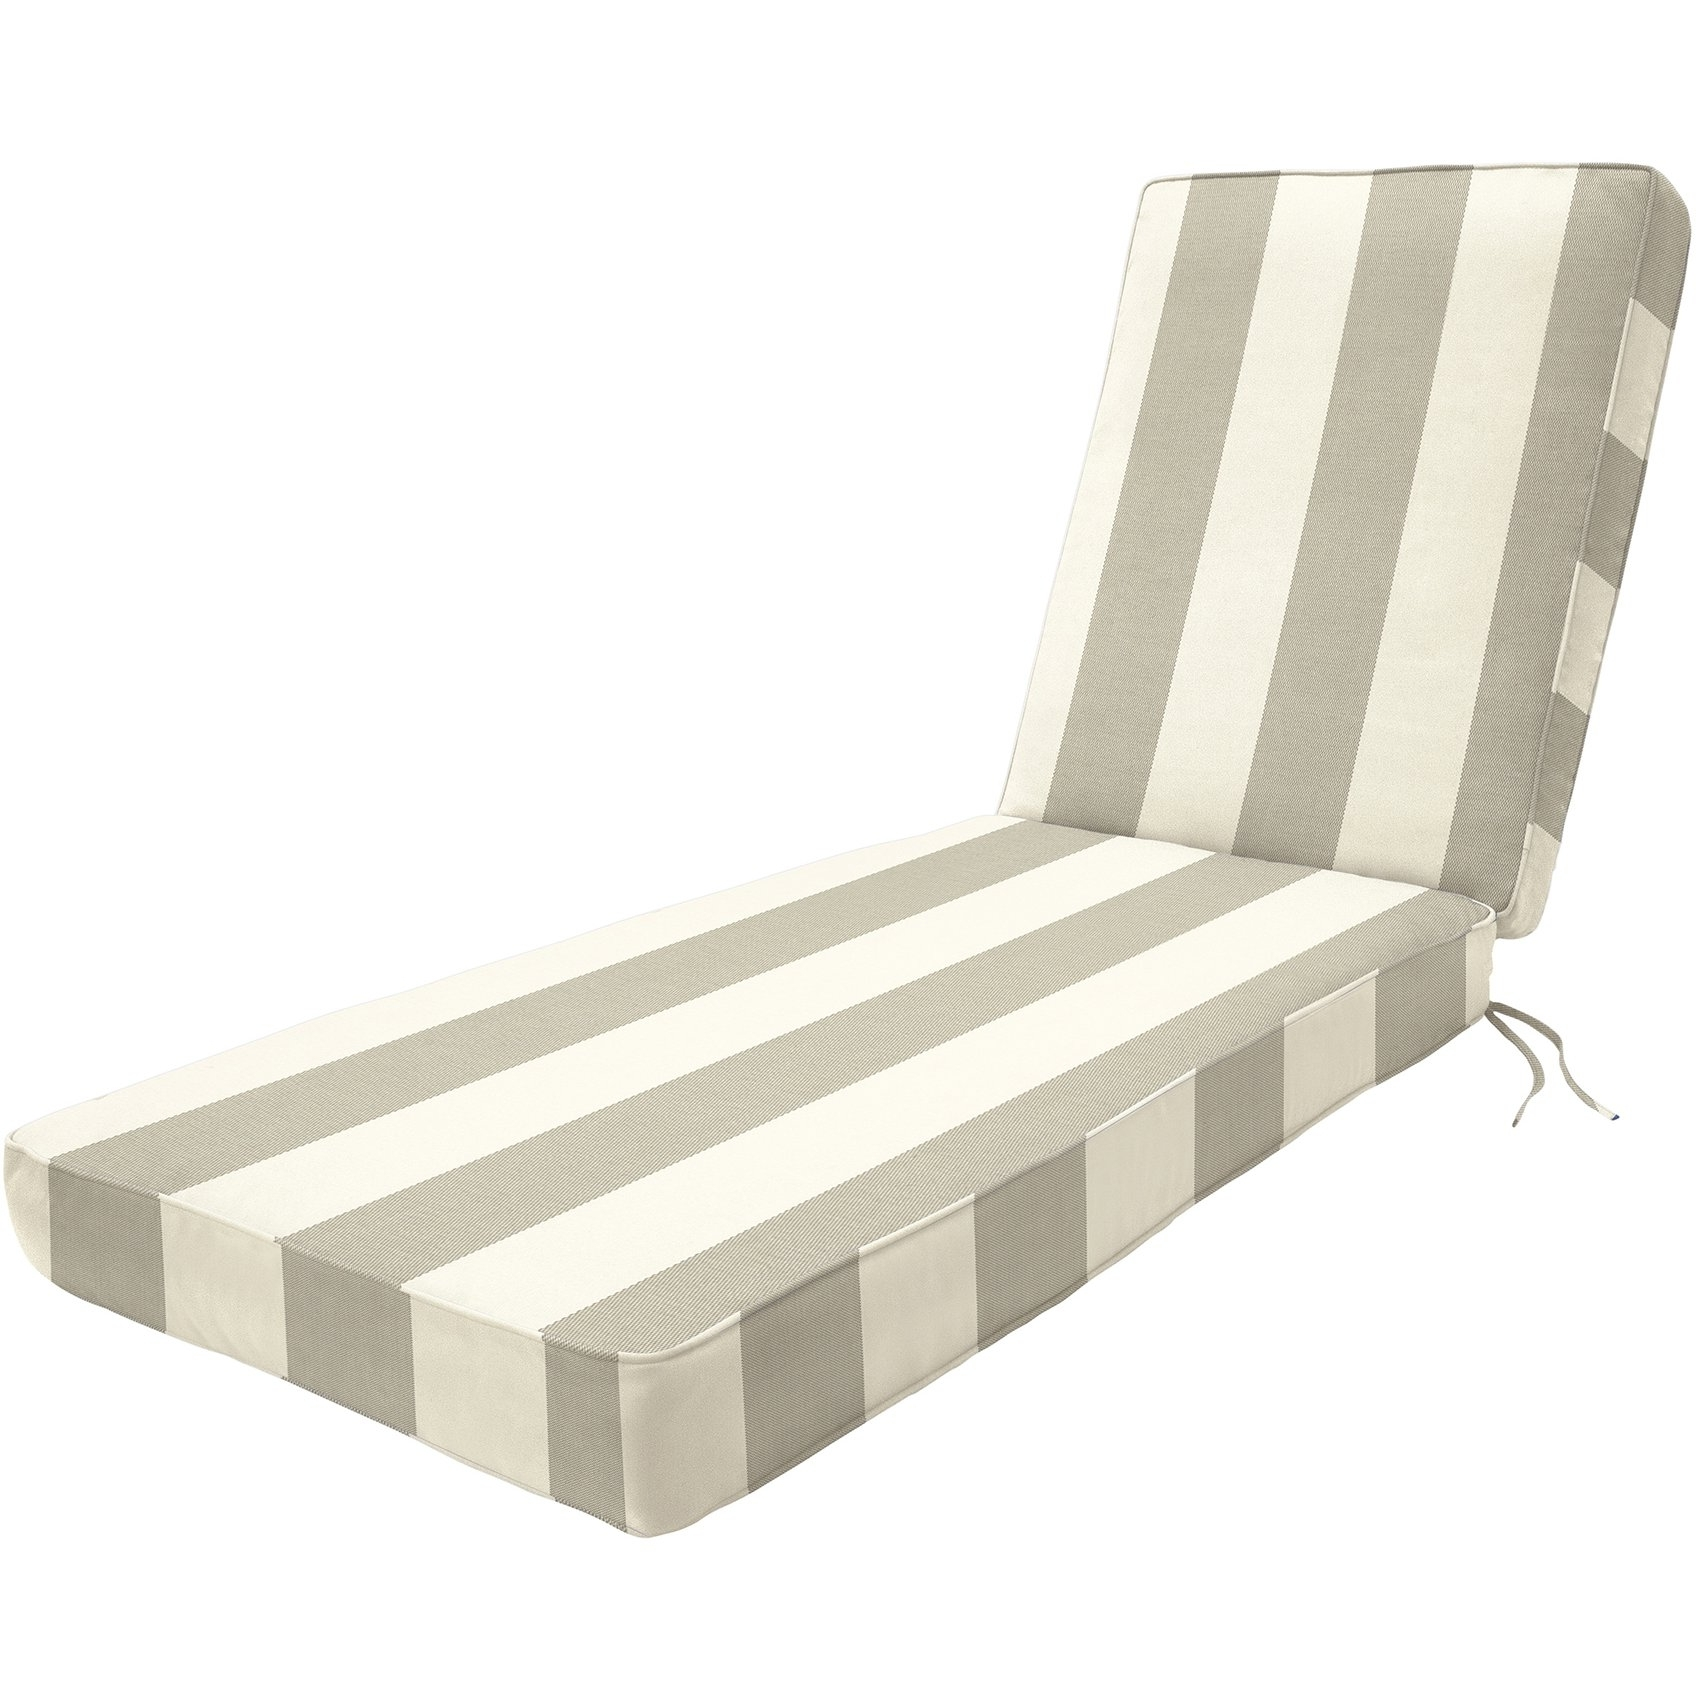 Best And Newest Oversized Chaise Lounge Cushions Outdoor Sun Lounge Cushions Sale Pertaining To Outdoor Chaise Lounge Cushions (View 3 of 15)